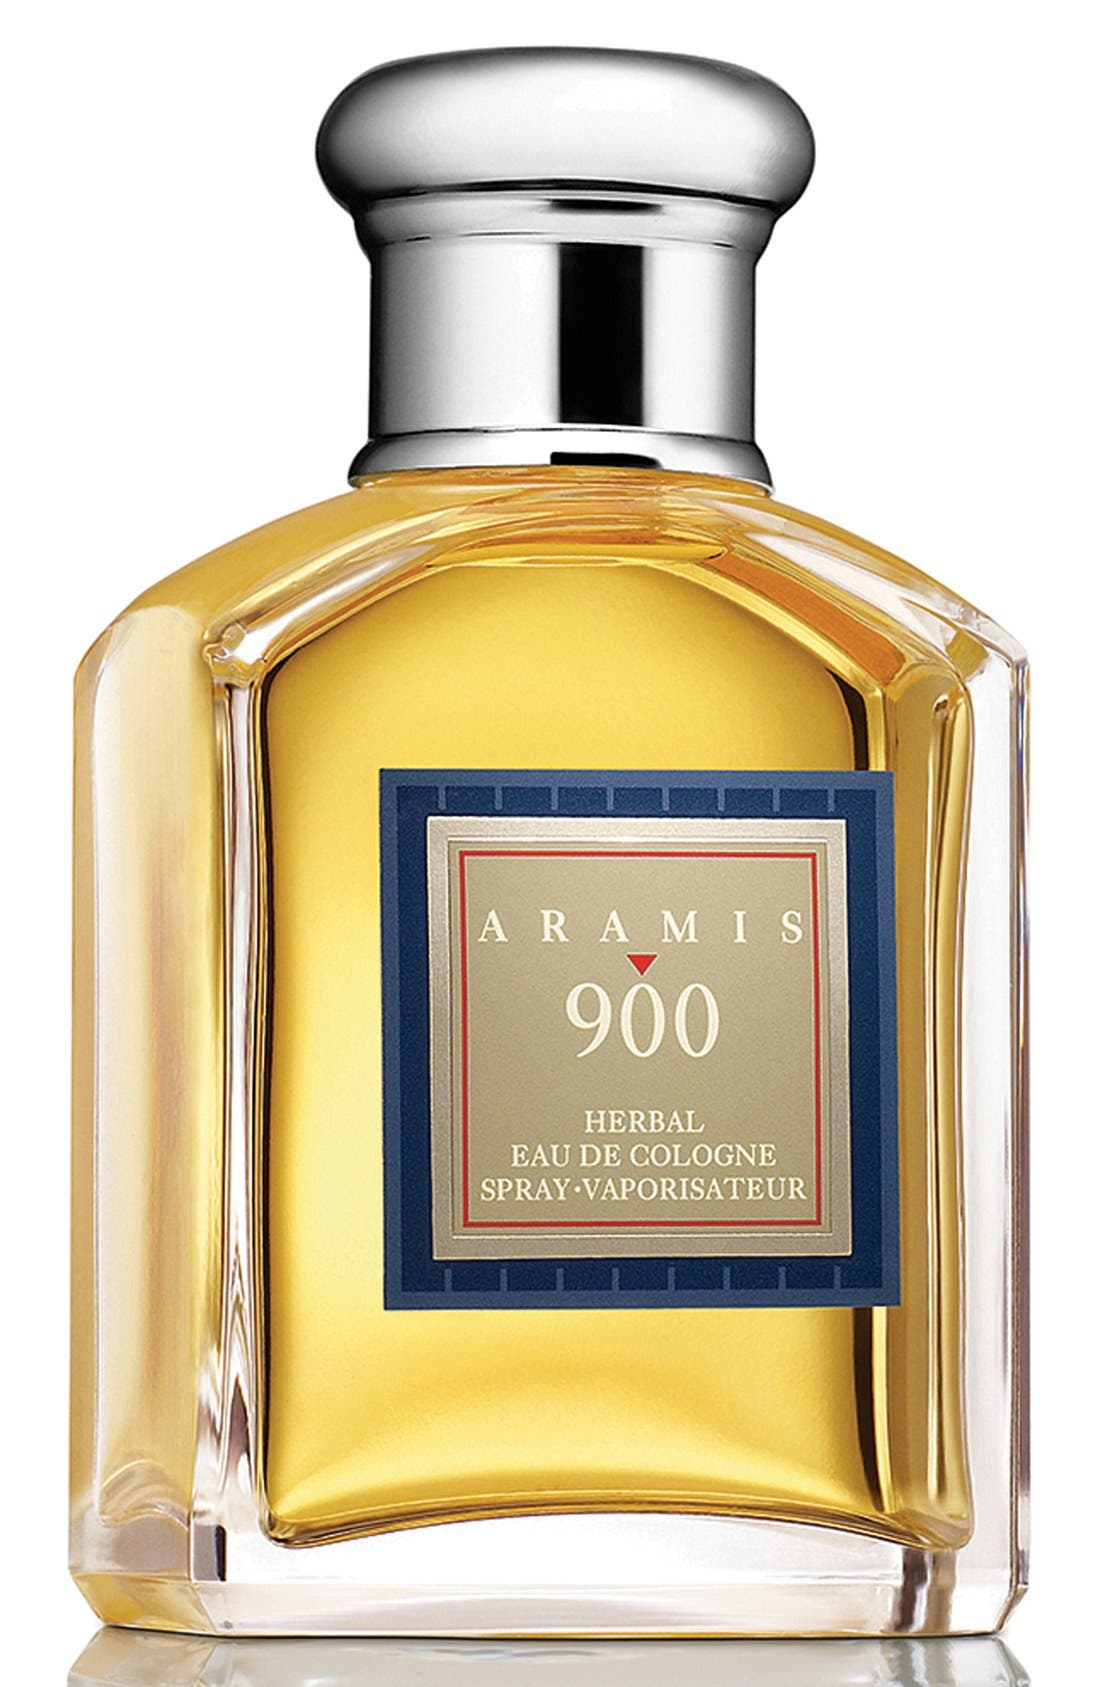 Aramis '900' Herbal Eau de Cologne